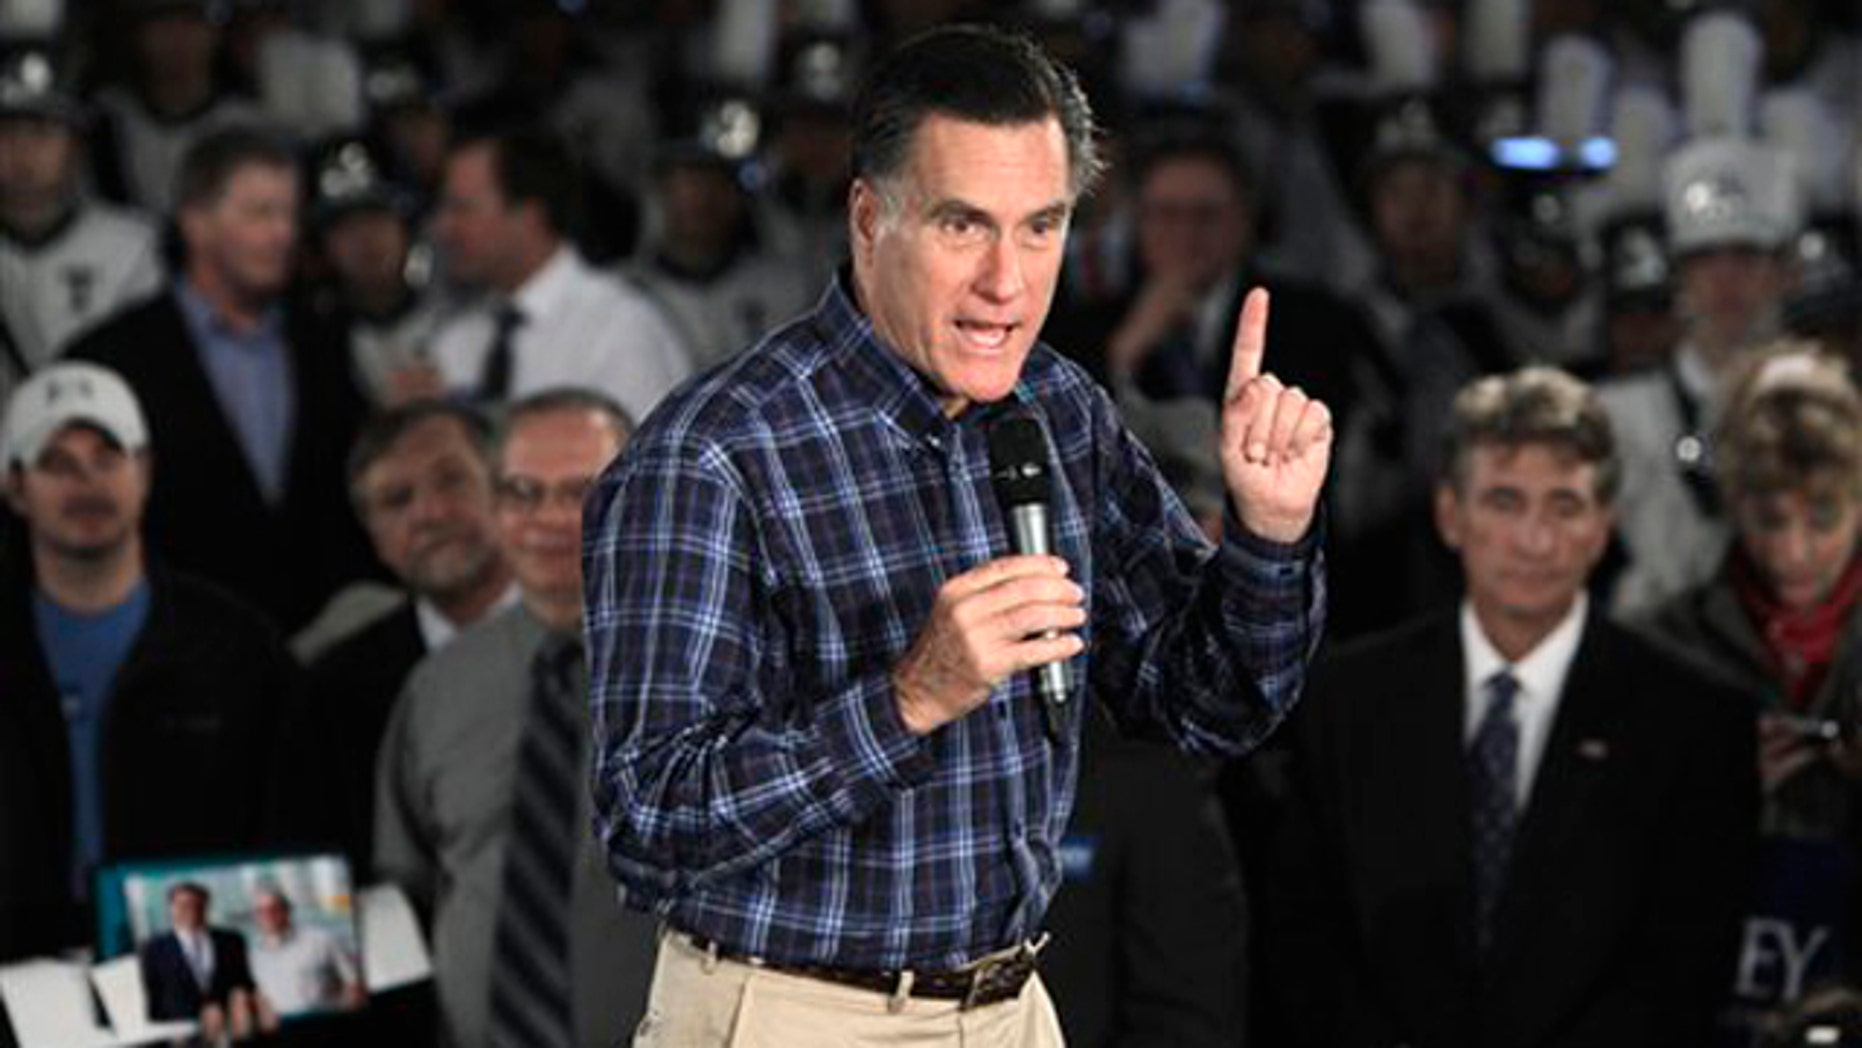 Nov. 10, 2011: Former Massachusetts Gov. Mitt Romney speaks at the American Polish Cultural Center in Troy, Mich.